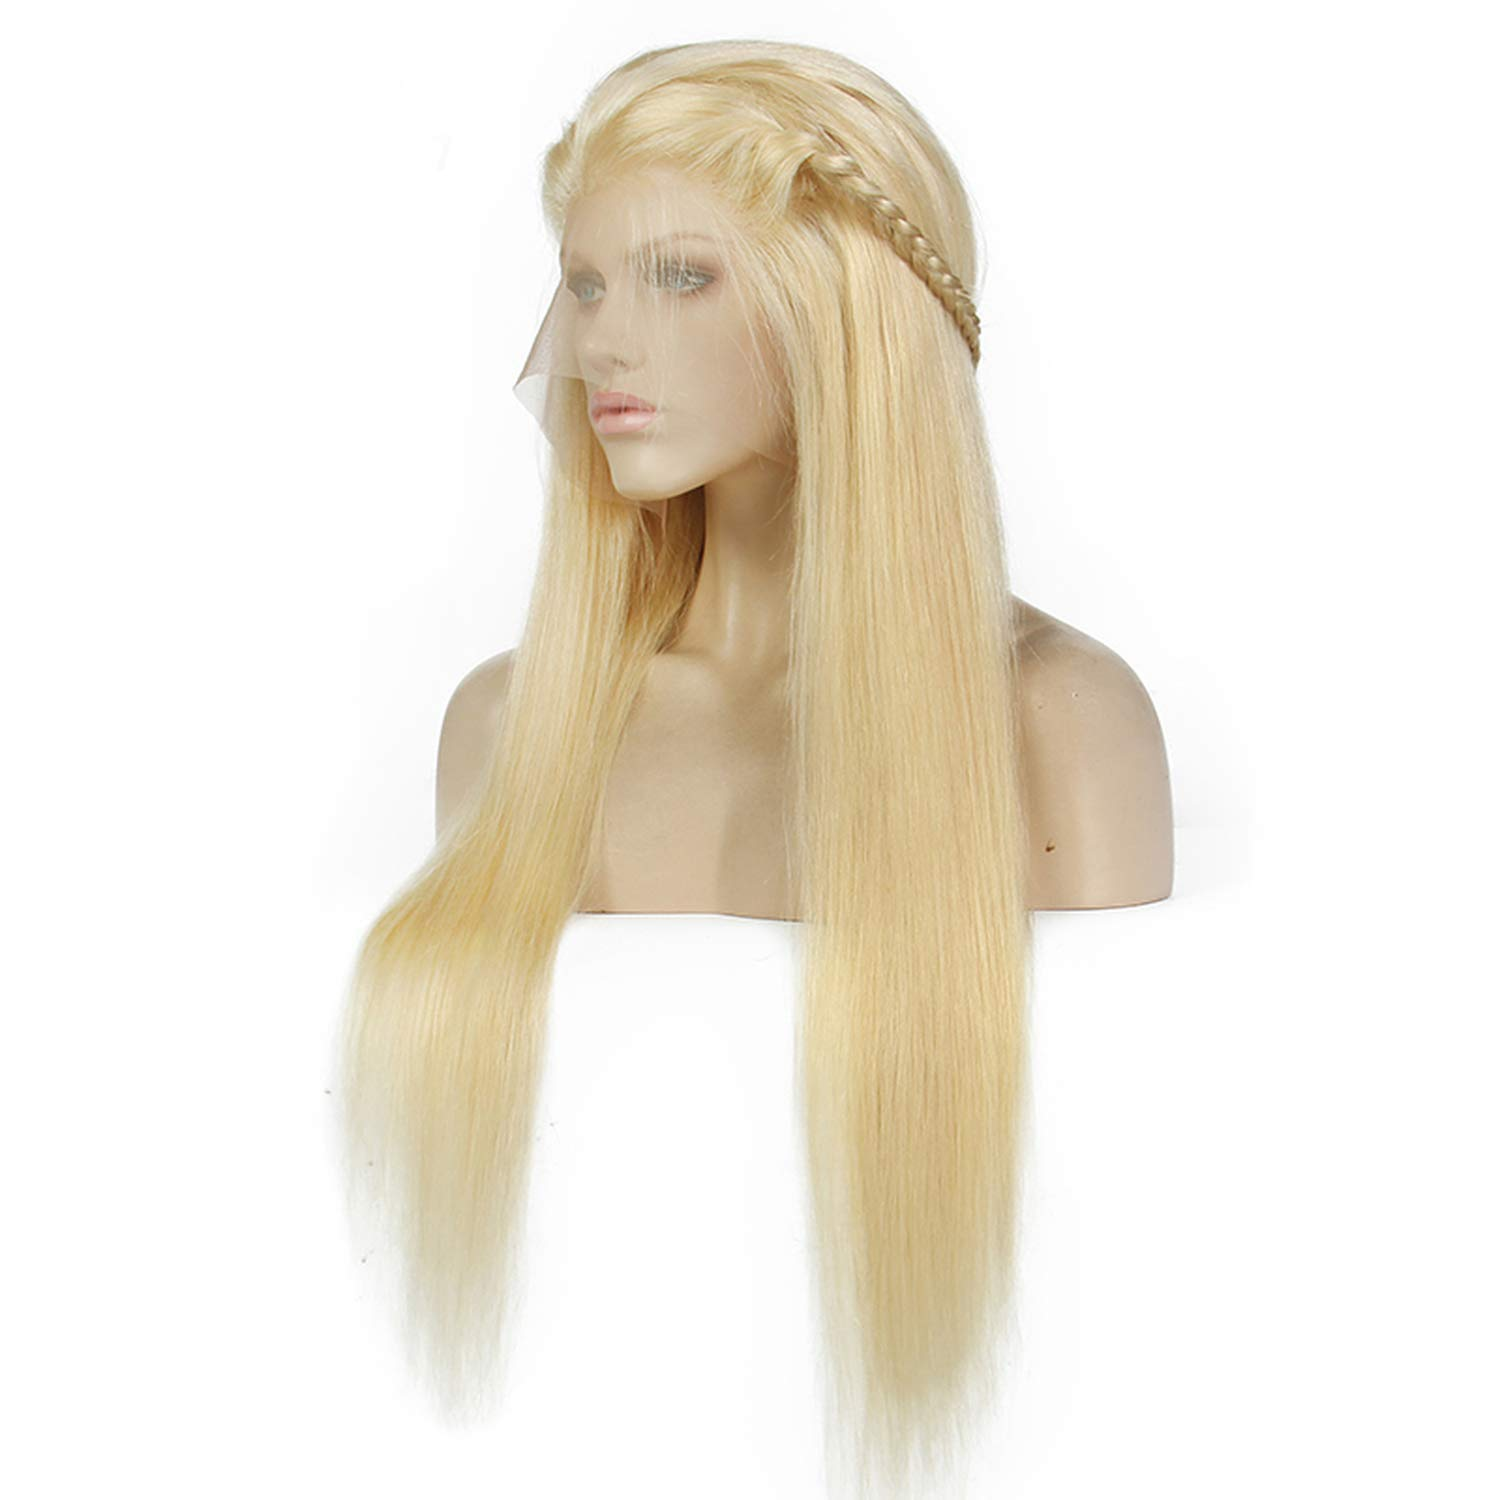 #613 Blonde Wigs 180% Density Silky Straight Brazilian Remy Human Hair lace front Wig 613 Lace Front Human Hair Wig,#613,8inches,180% 61UlQWoHWVL._SL1500_